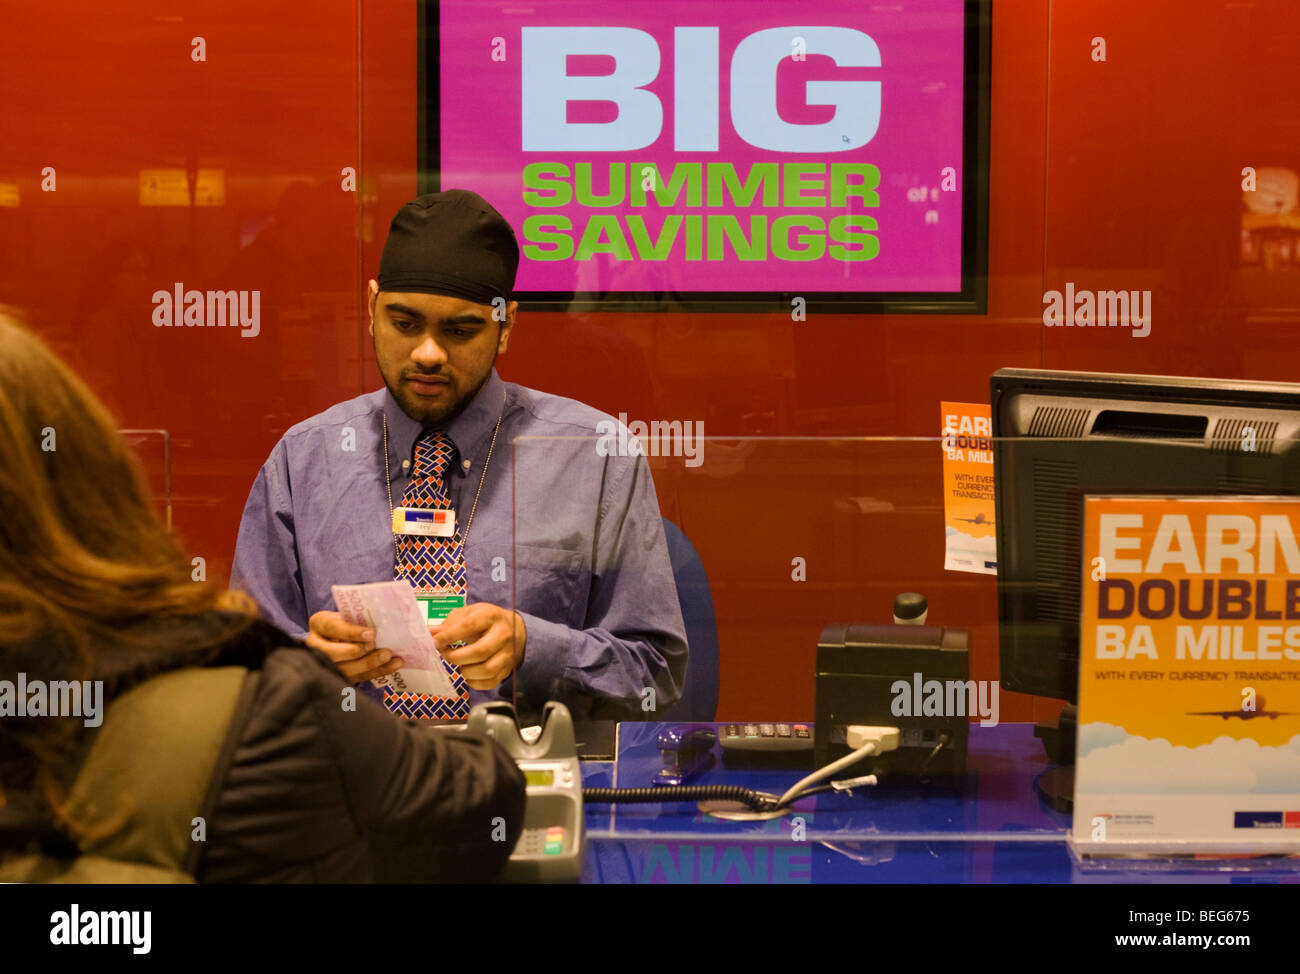 Travelex bureau de change assistant serves currency to passenger at Heathrow airport's terminal 5 - Stock Image